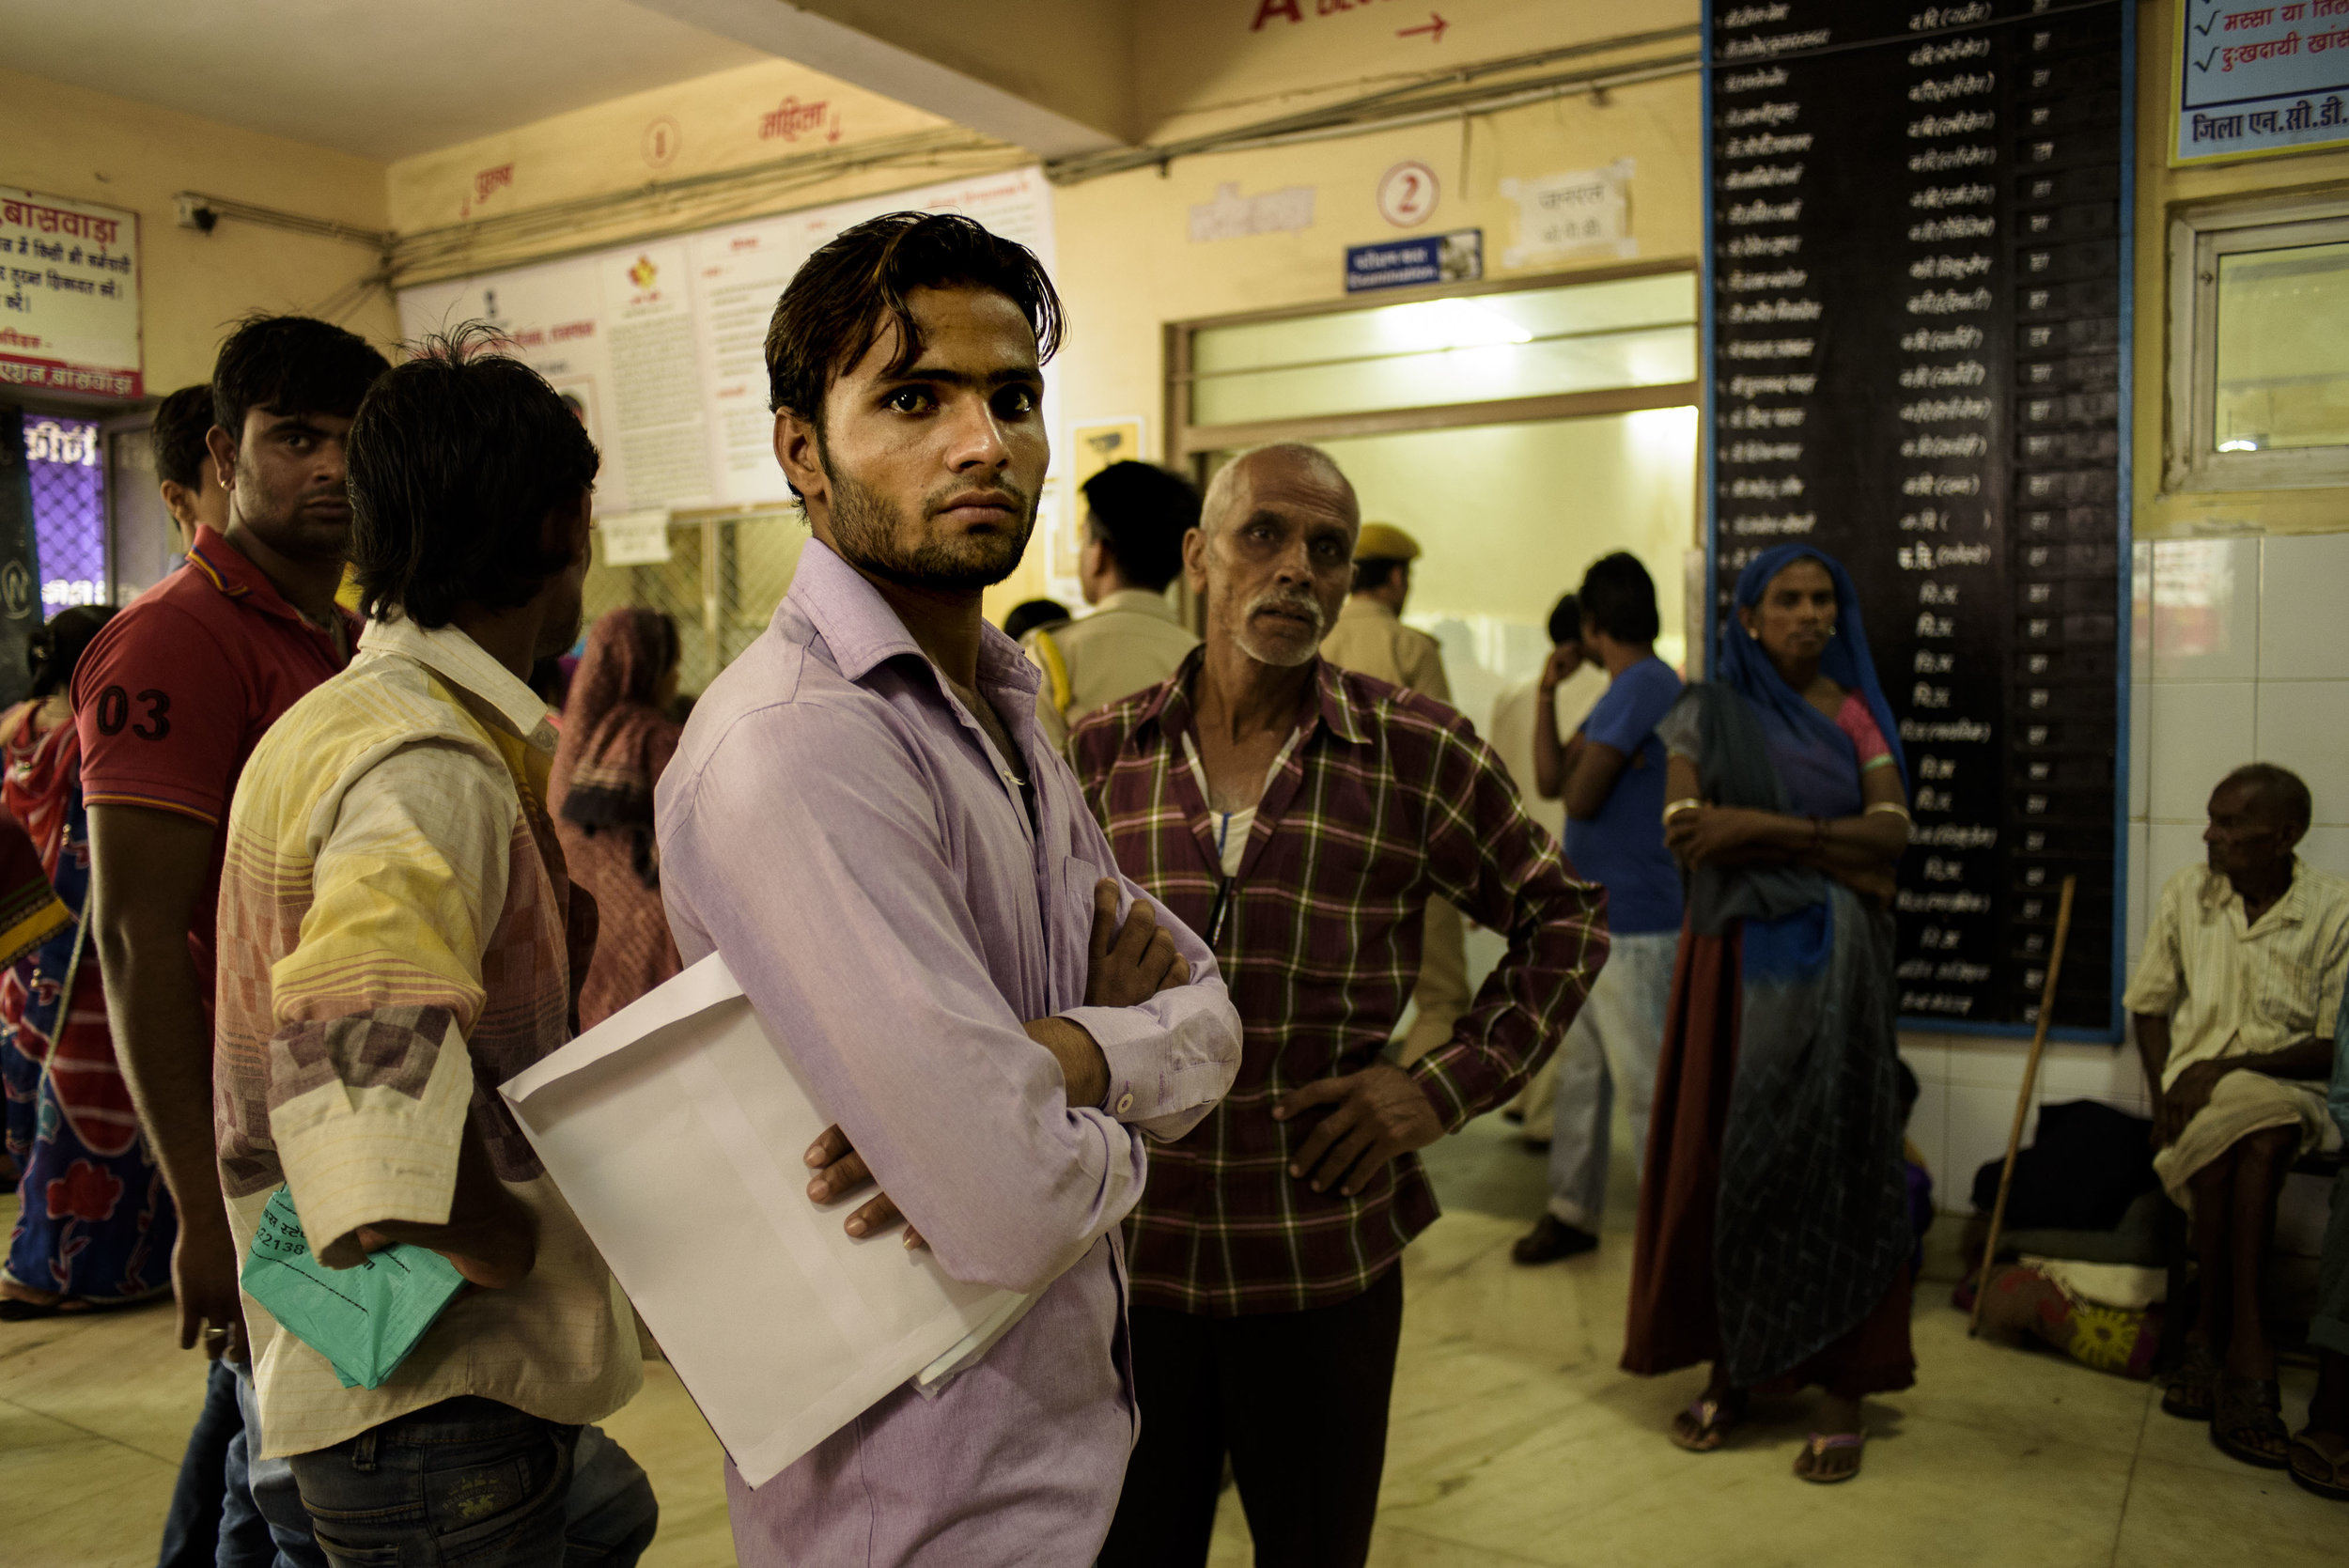 A man waits for his turn to get an appointment with a doctor in the lobby of the Mahatma Gandhi Hospital, Banswara. The district hospital has experiences an influx of more than 800 patients per day.